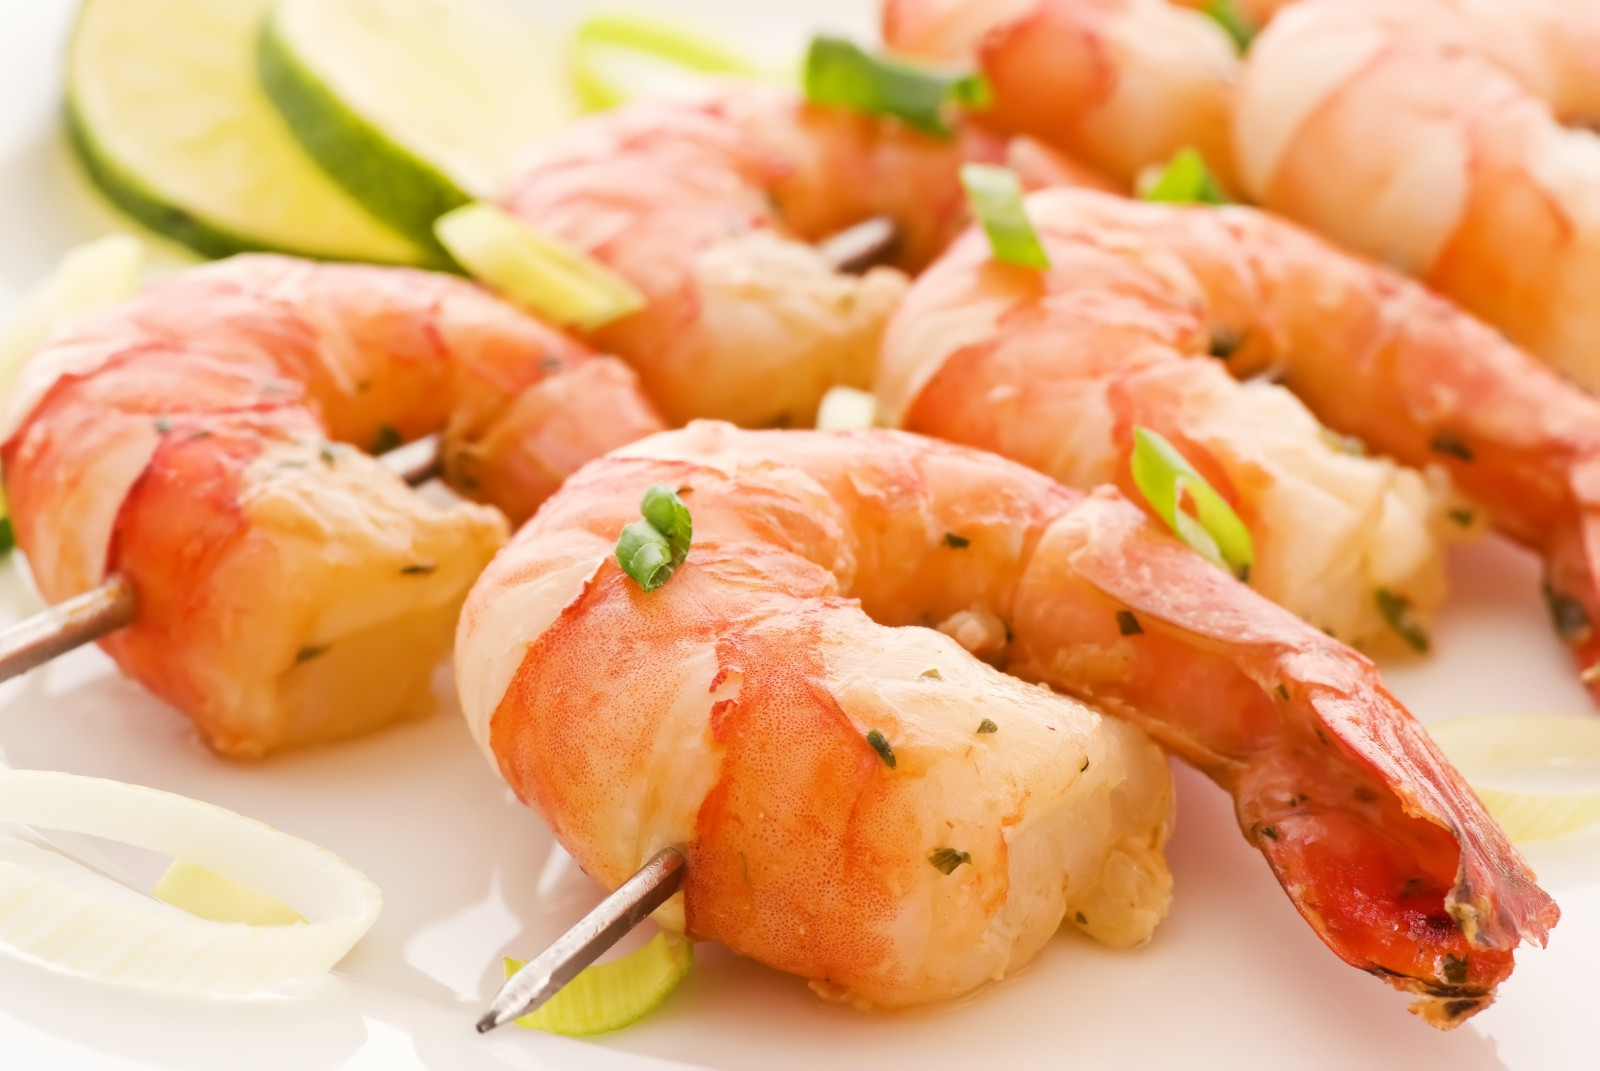 https://dreamed.ru/public/8a8-Shrimp-Nutritional-Benefits8a84f.jpg